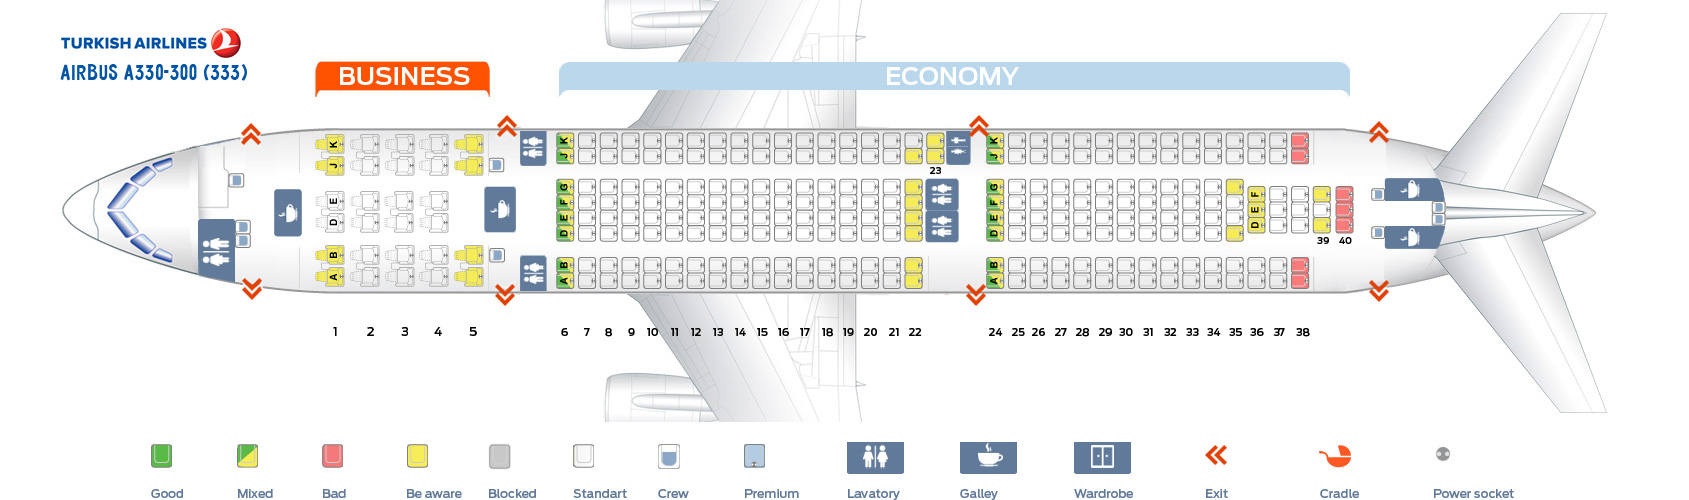 Seat Map Airbus A330-300 Turkish Airlines